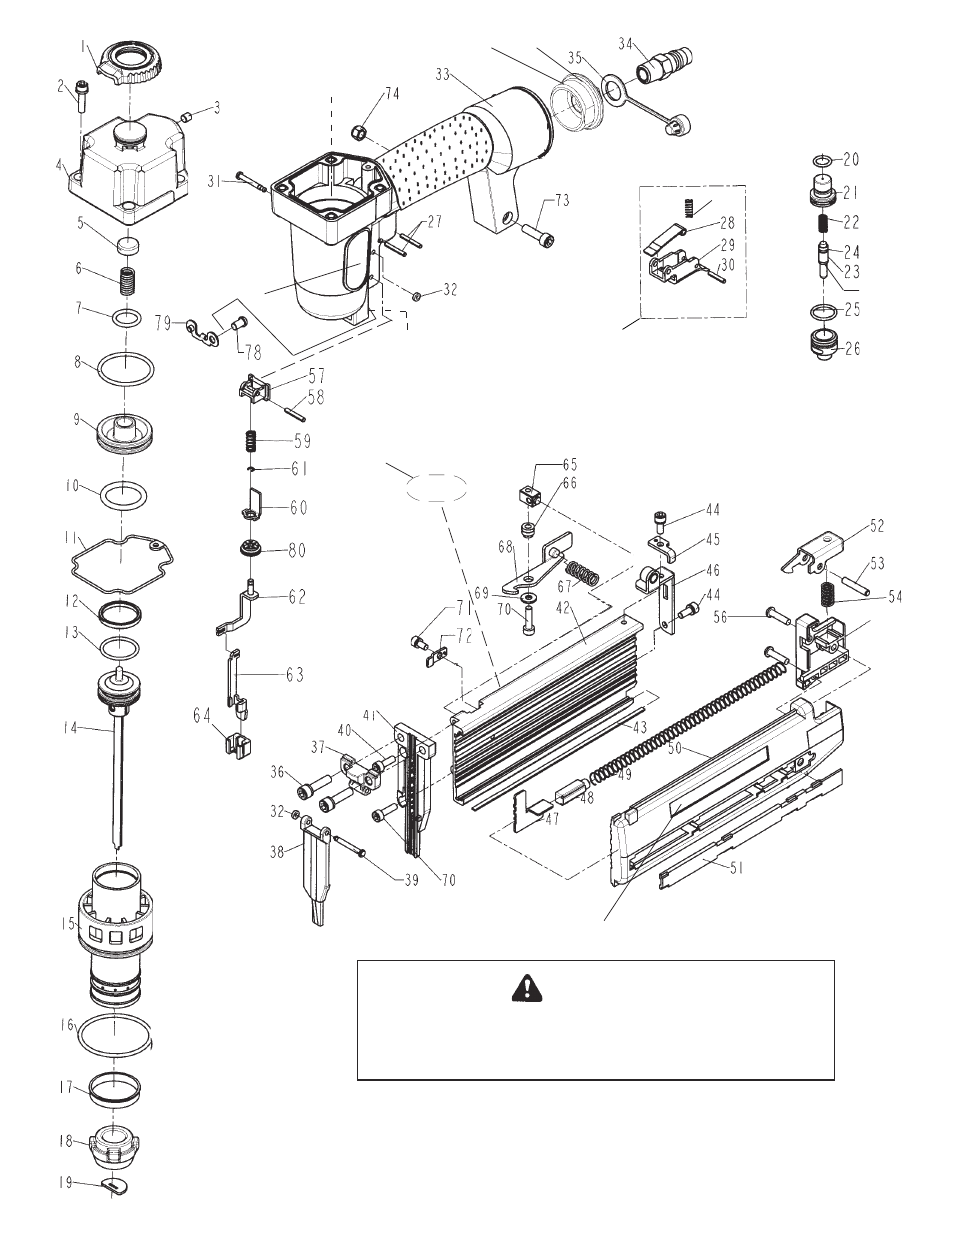 Paslode T125 F18 Schematic - Search For Wiring Diagrams •